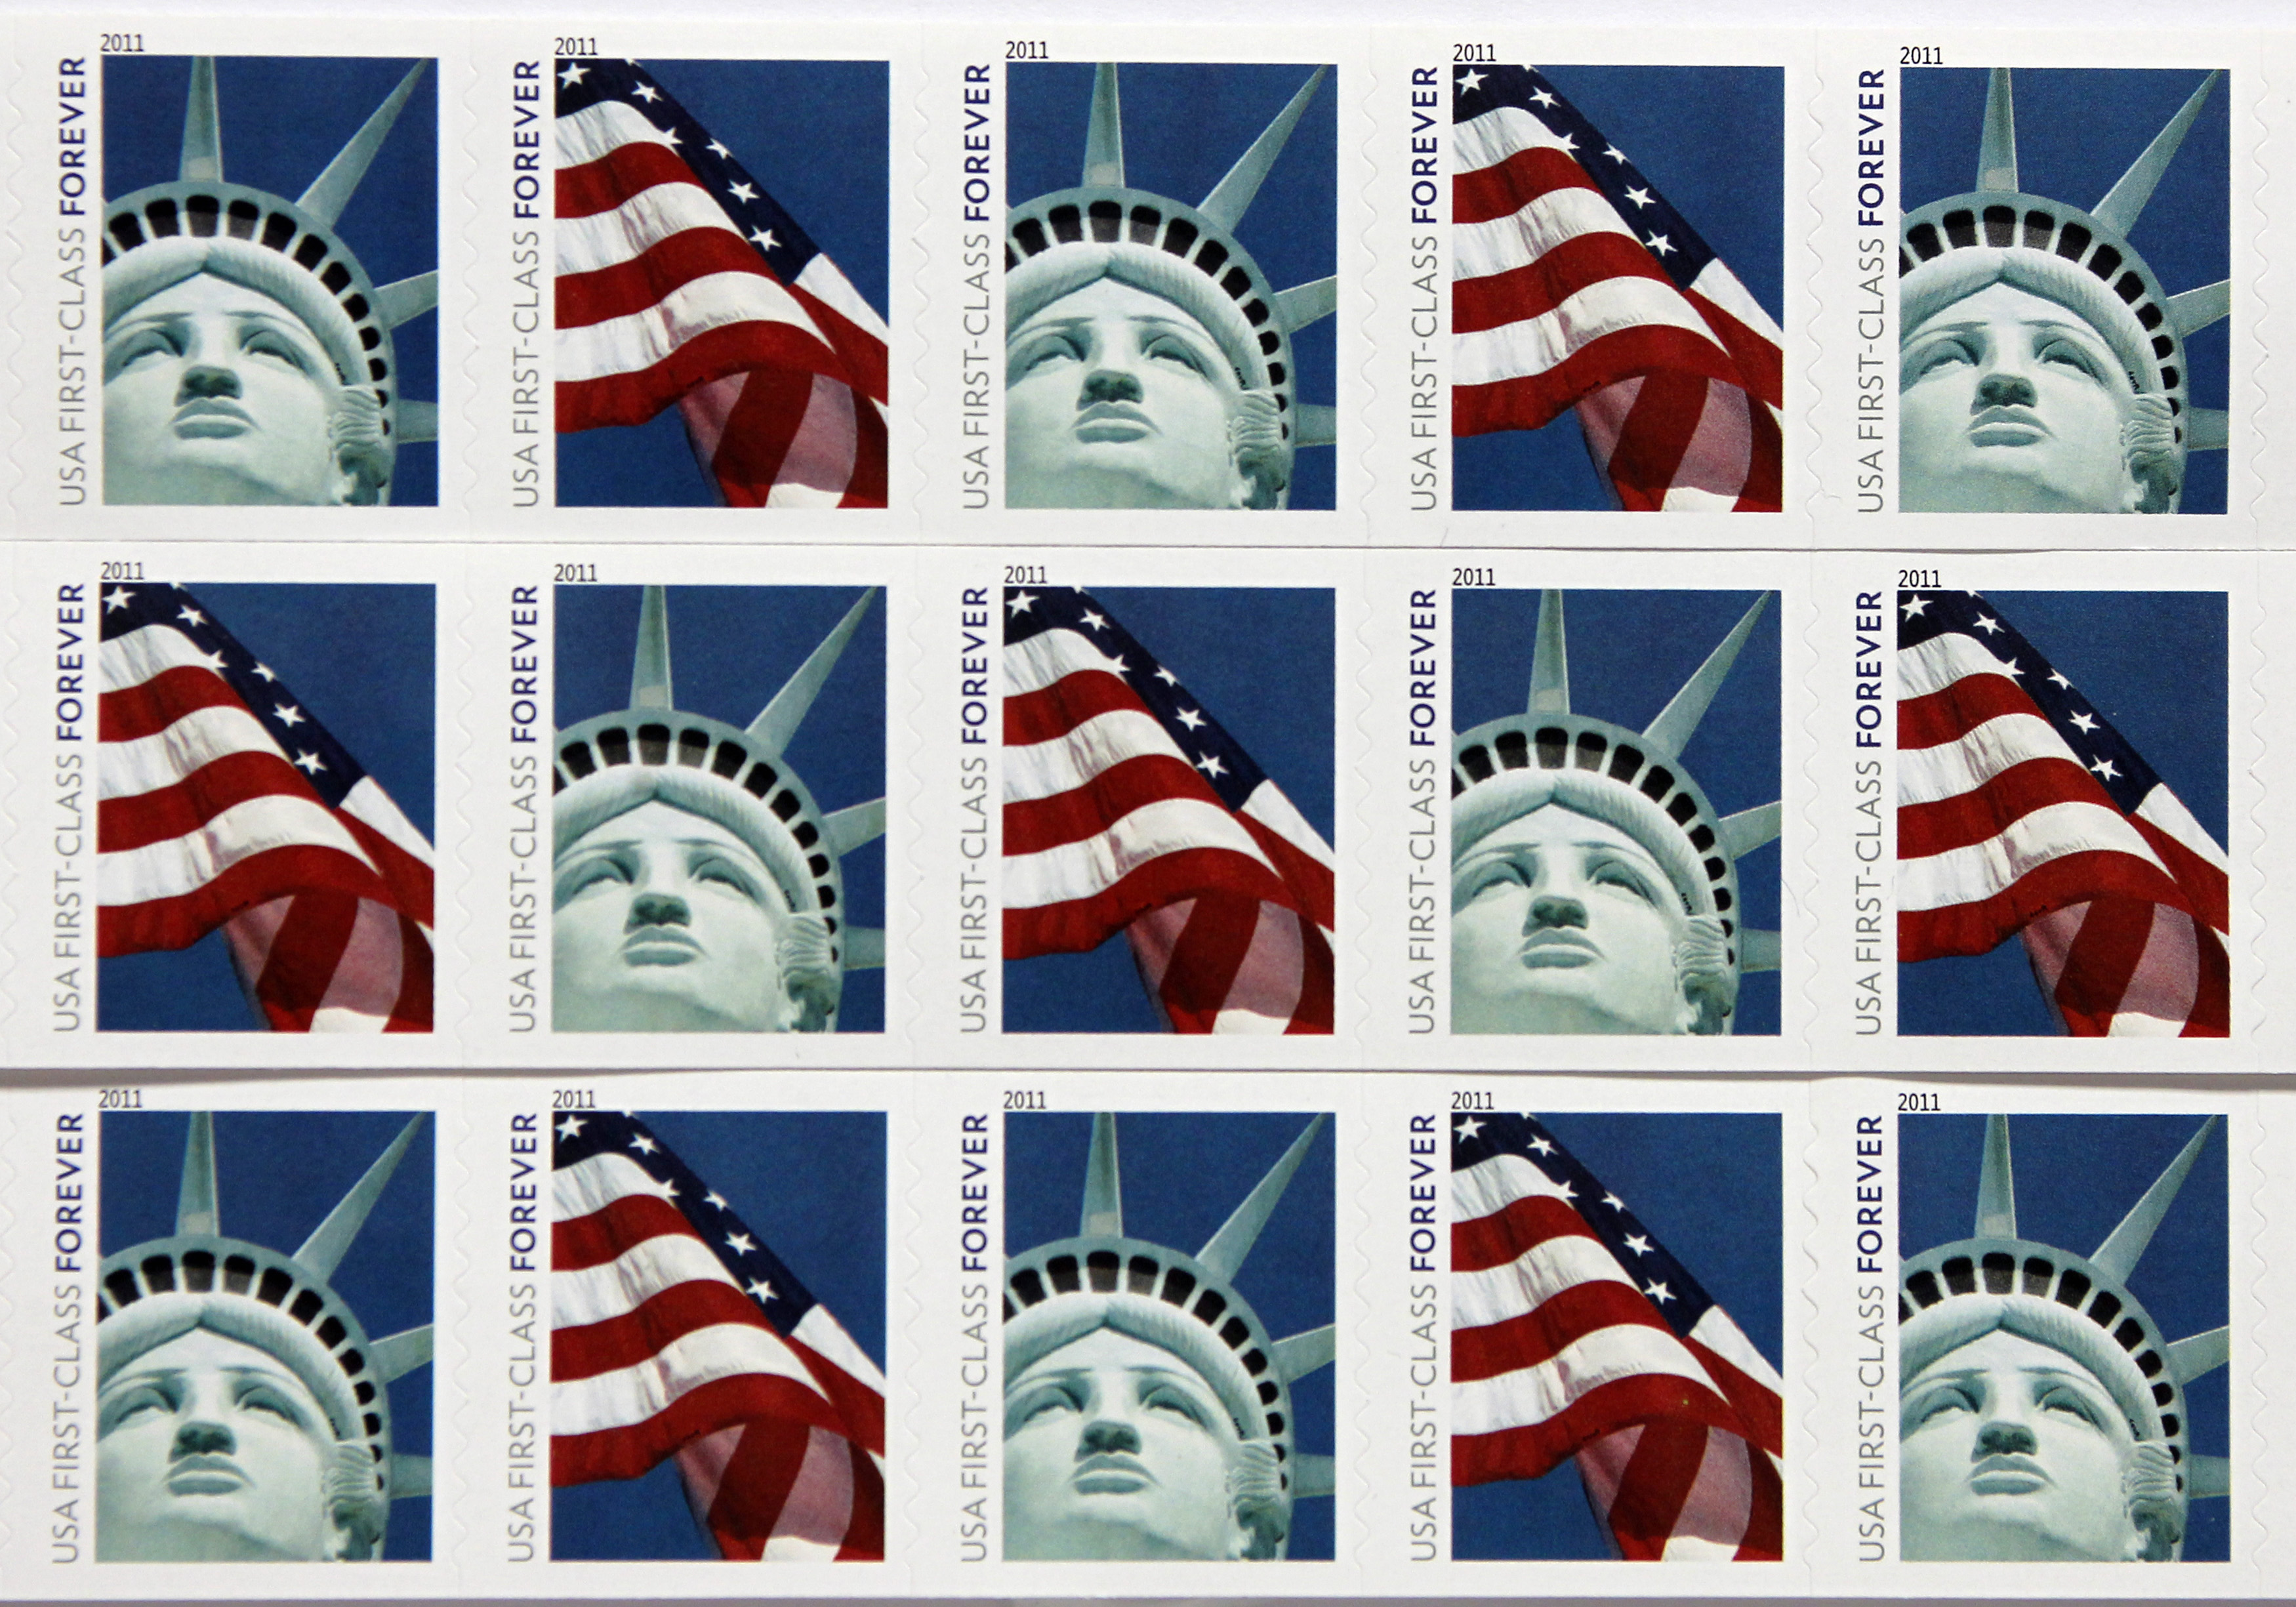 New USA First Class postage stamps, bearing an image of the Statue of Liberty and U.S. flags, are seen in Washington, April 15, 2011.